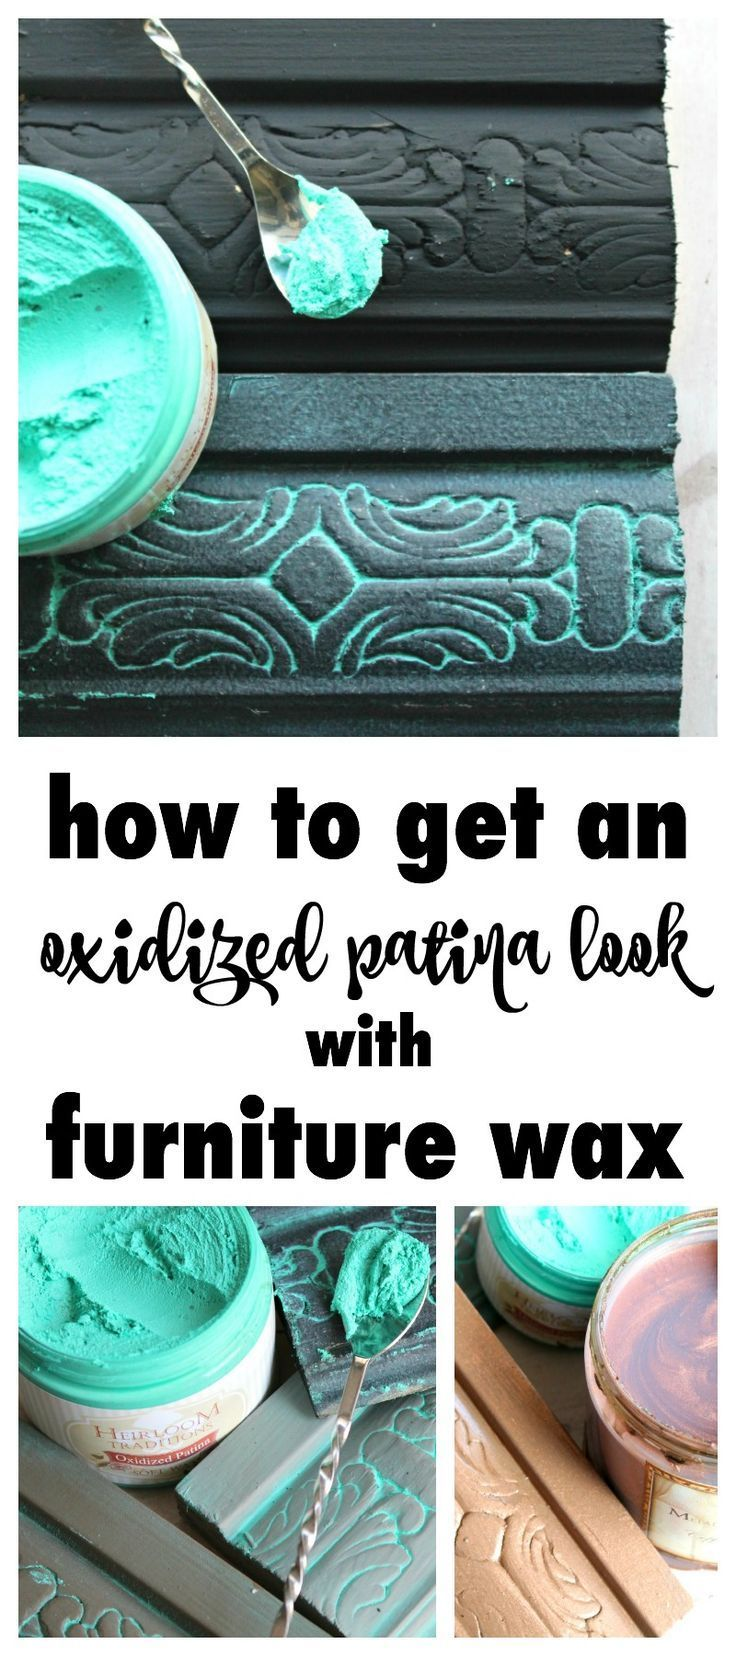 How To Get An Oxidized Patina Look With Furniture Wax . Oxidized Patina  Furniture Wax Is Made To Mimic The Look Of The Bluish Hue Nature Creates On  Crusty, ...